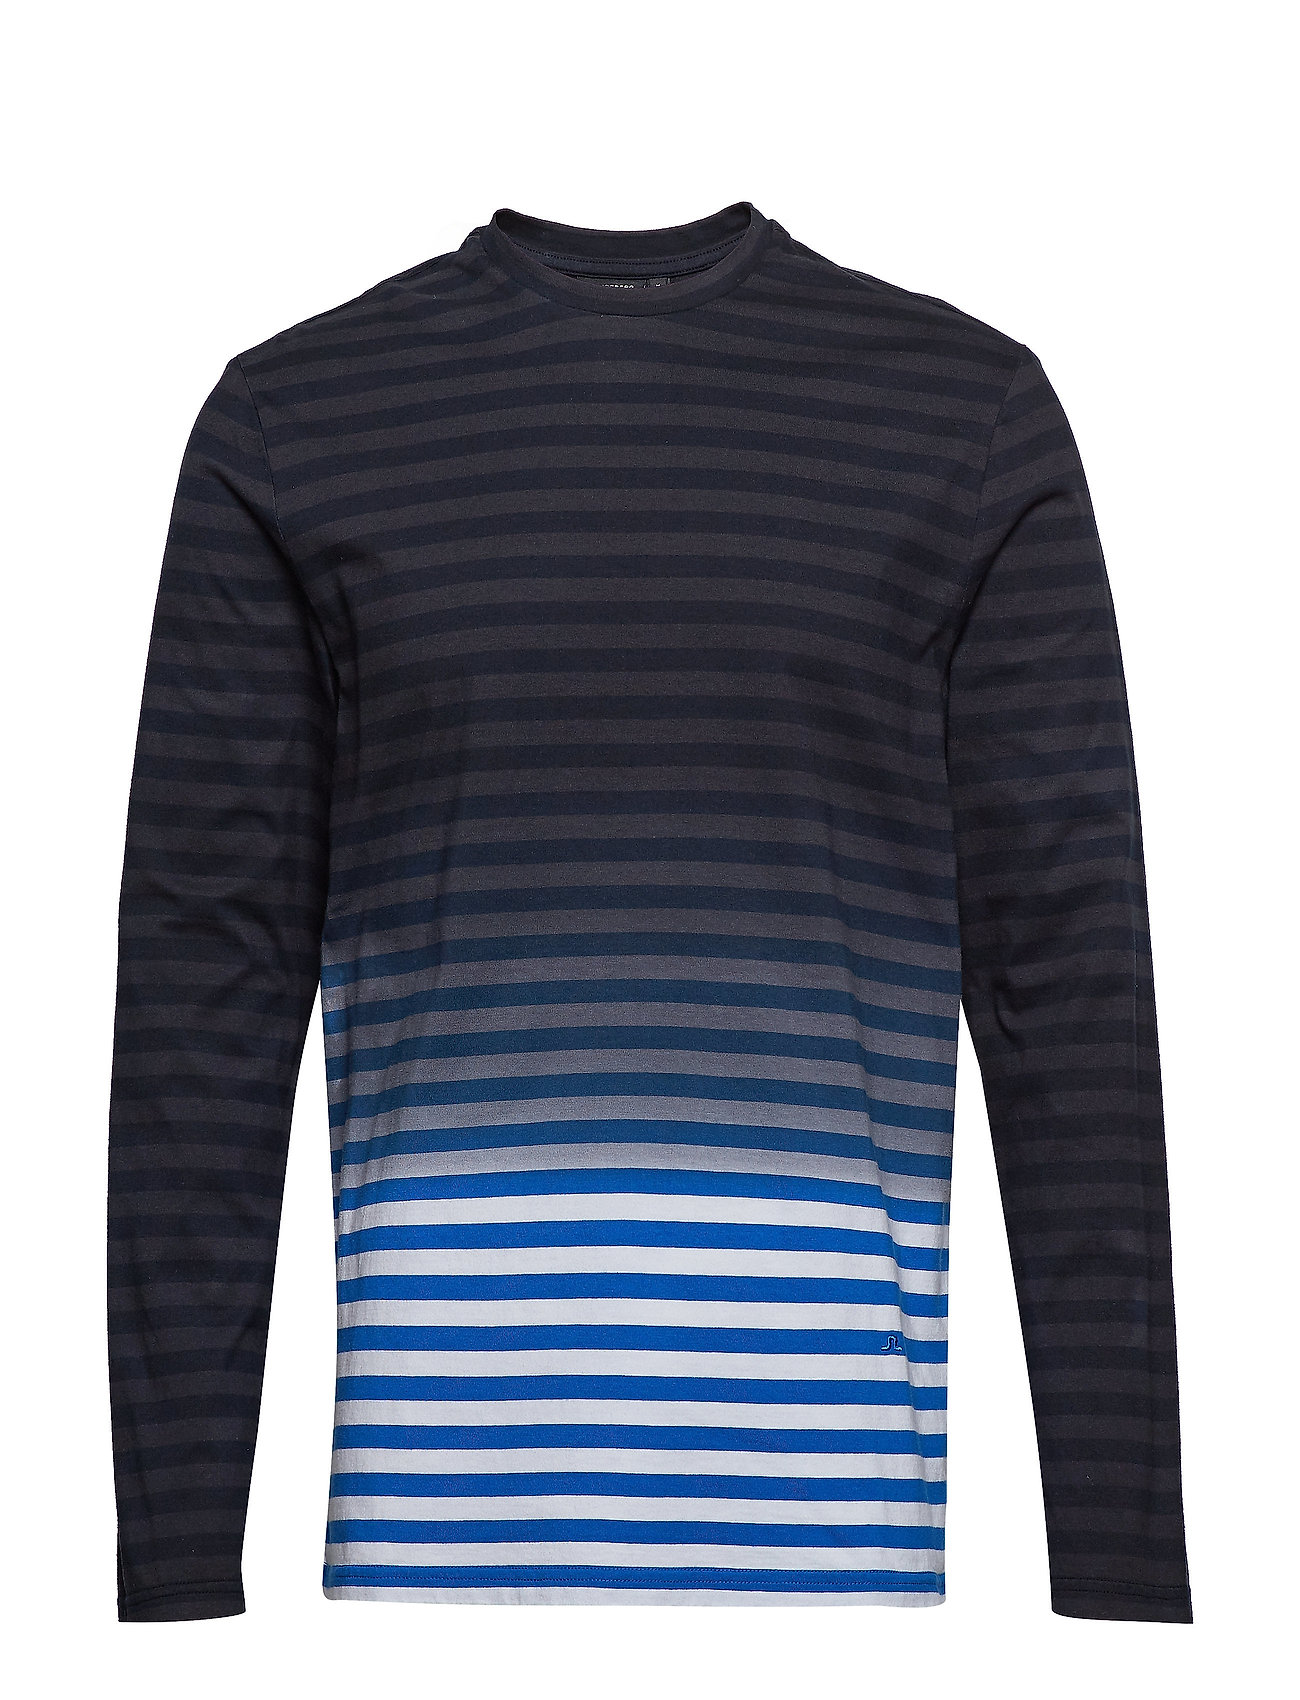 J. Lindeberg Charlie Plain Stripe - WORK BLUE